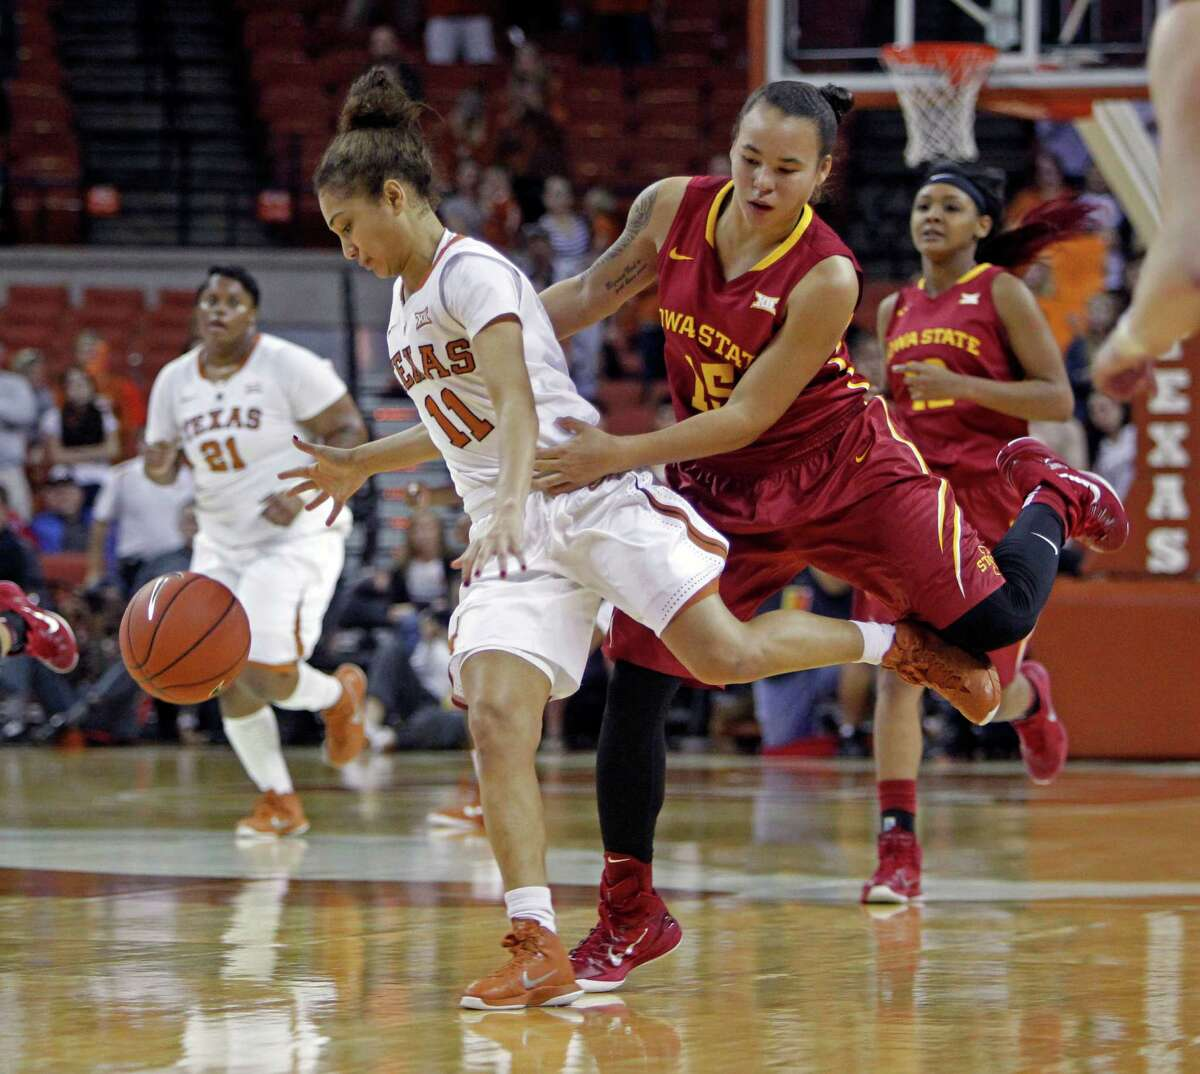 Iowa State's Nicole Blaskowsky, right, commits a foul by grabbing Texas' Brooke McCarty.